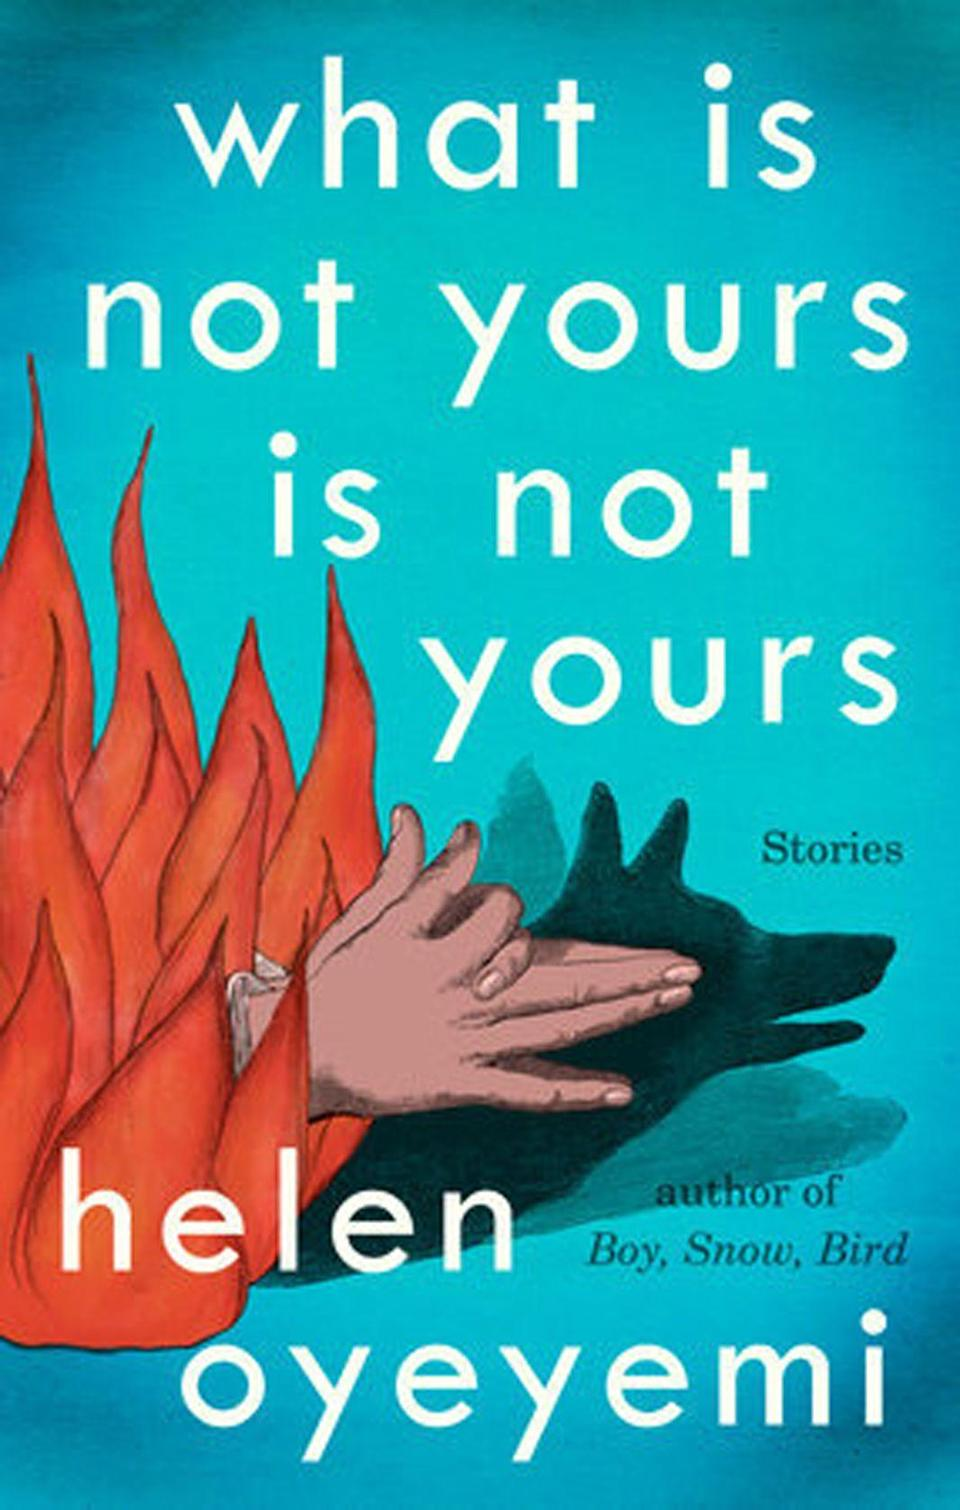 <p><strong><em>What Is Not Yours Is Not Yours</em></strong></p><p>By Helen Oyeyemi</p><p>This collection of short stories is a treat for the senses. Oyeyemi's tales stretch over multiple times and landscapes and tease the boundaries between coexisting realities. Hone your imagination and lose yourself in a beautiful, sensuous world of lost libraries and locked gardens, of marshlands where the drowned dead live and a city where all the clocks have stopped. A perfect book for when you need to escape.</p>